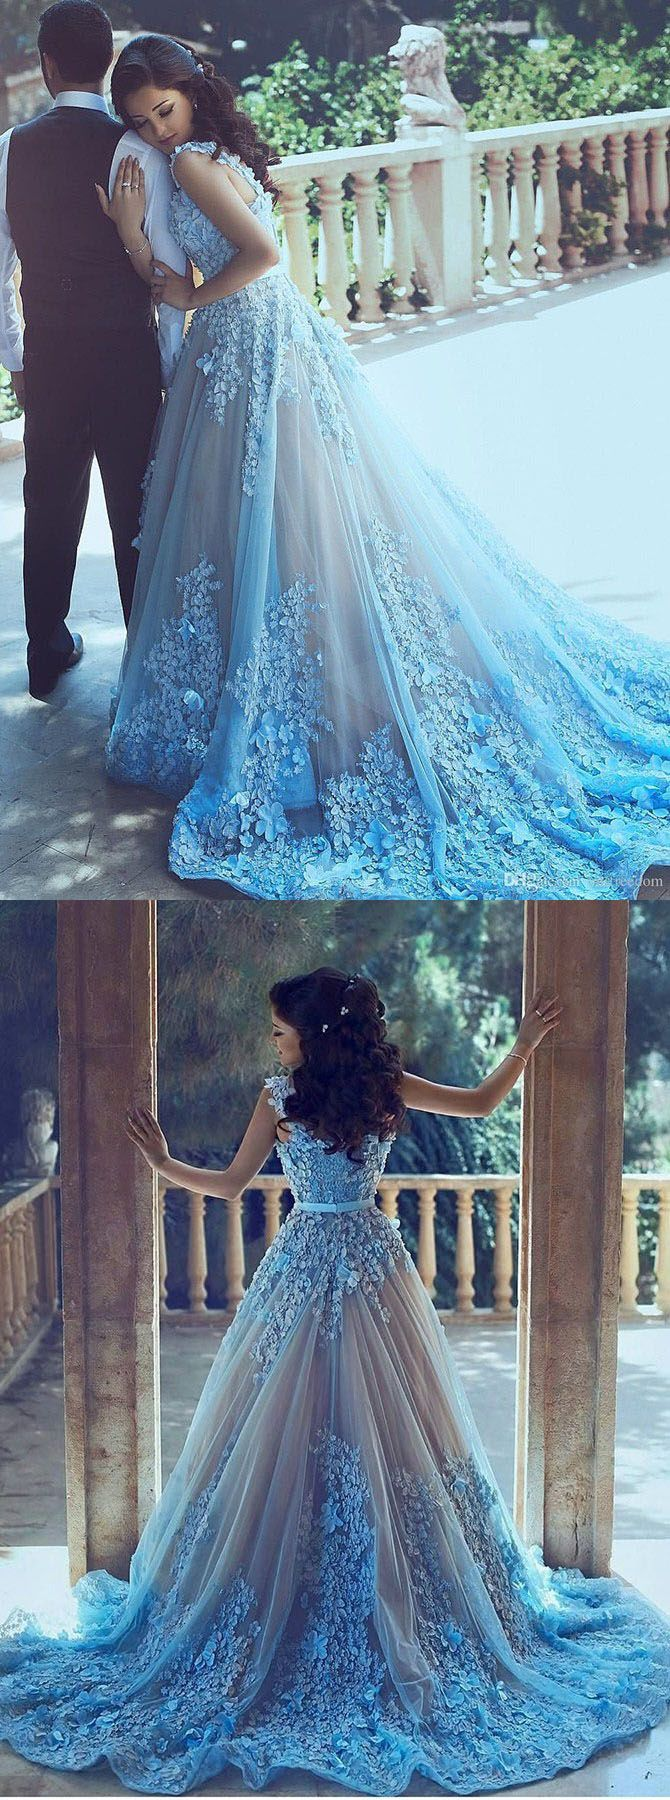 A-Line Wedding Dress,Blue Wedding Dress, Sleeveless Tulle Wedding Dresses With Chapel Train,Princess Wedding Dresses,Wedding Dresses 2017,A-Line Wedding Dress,Blue Wedding Dress, Sleeveless Tulle Wedding Dresses With Chapel Train,Princess Wedding Dresses,Wedding Dresses